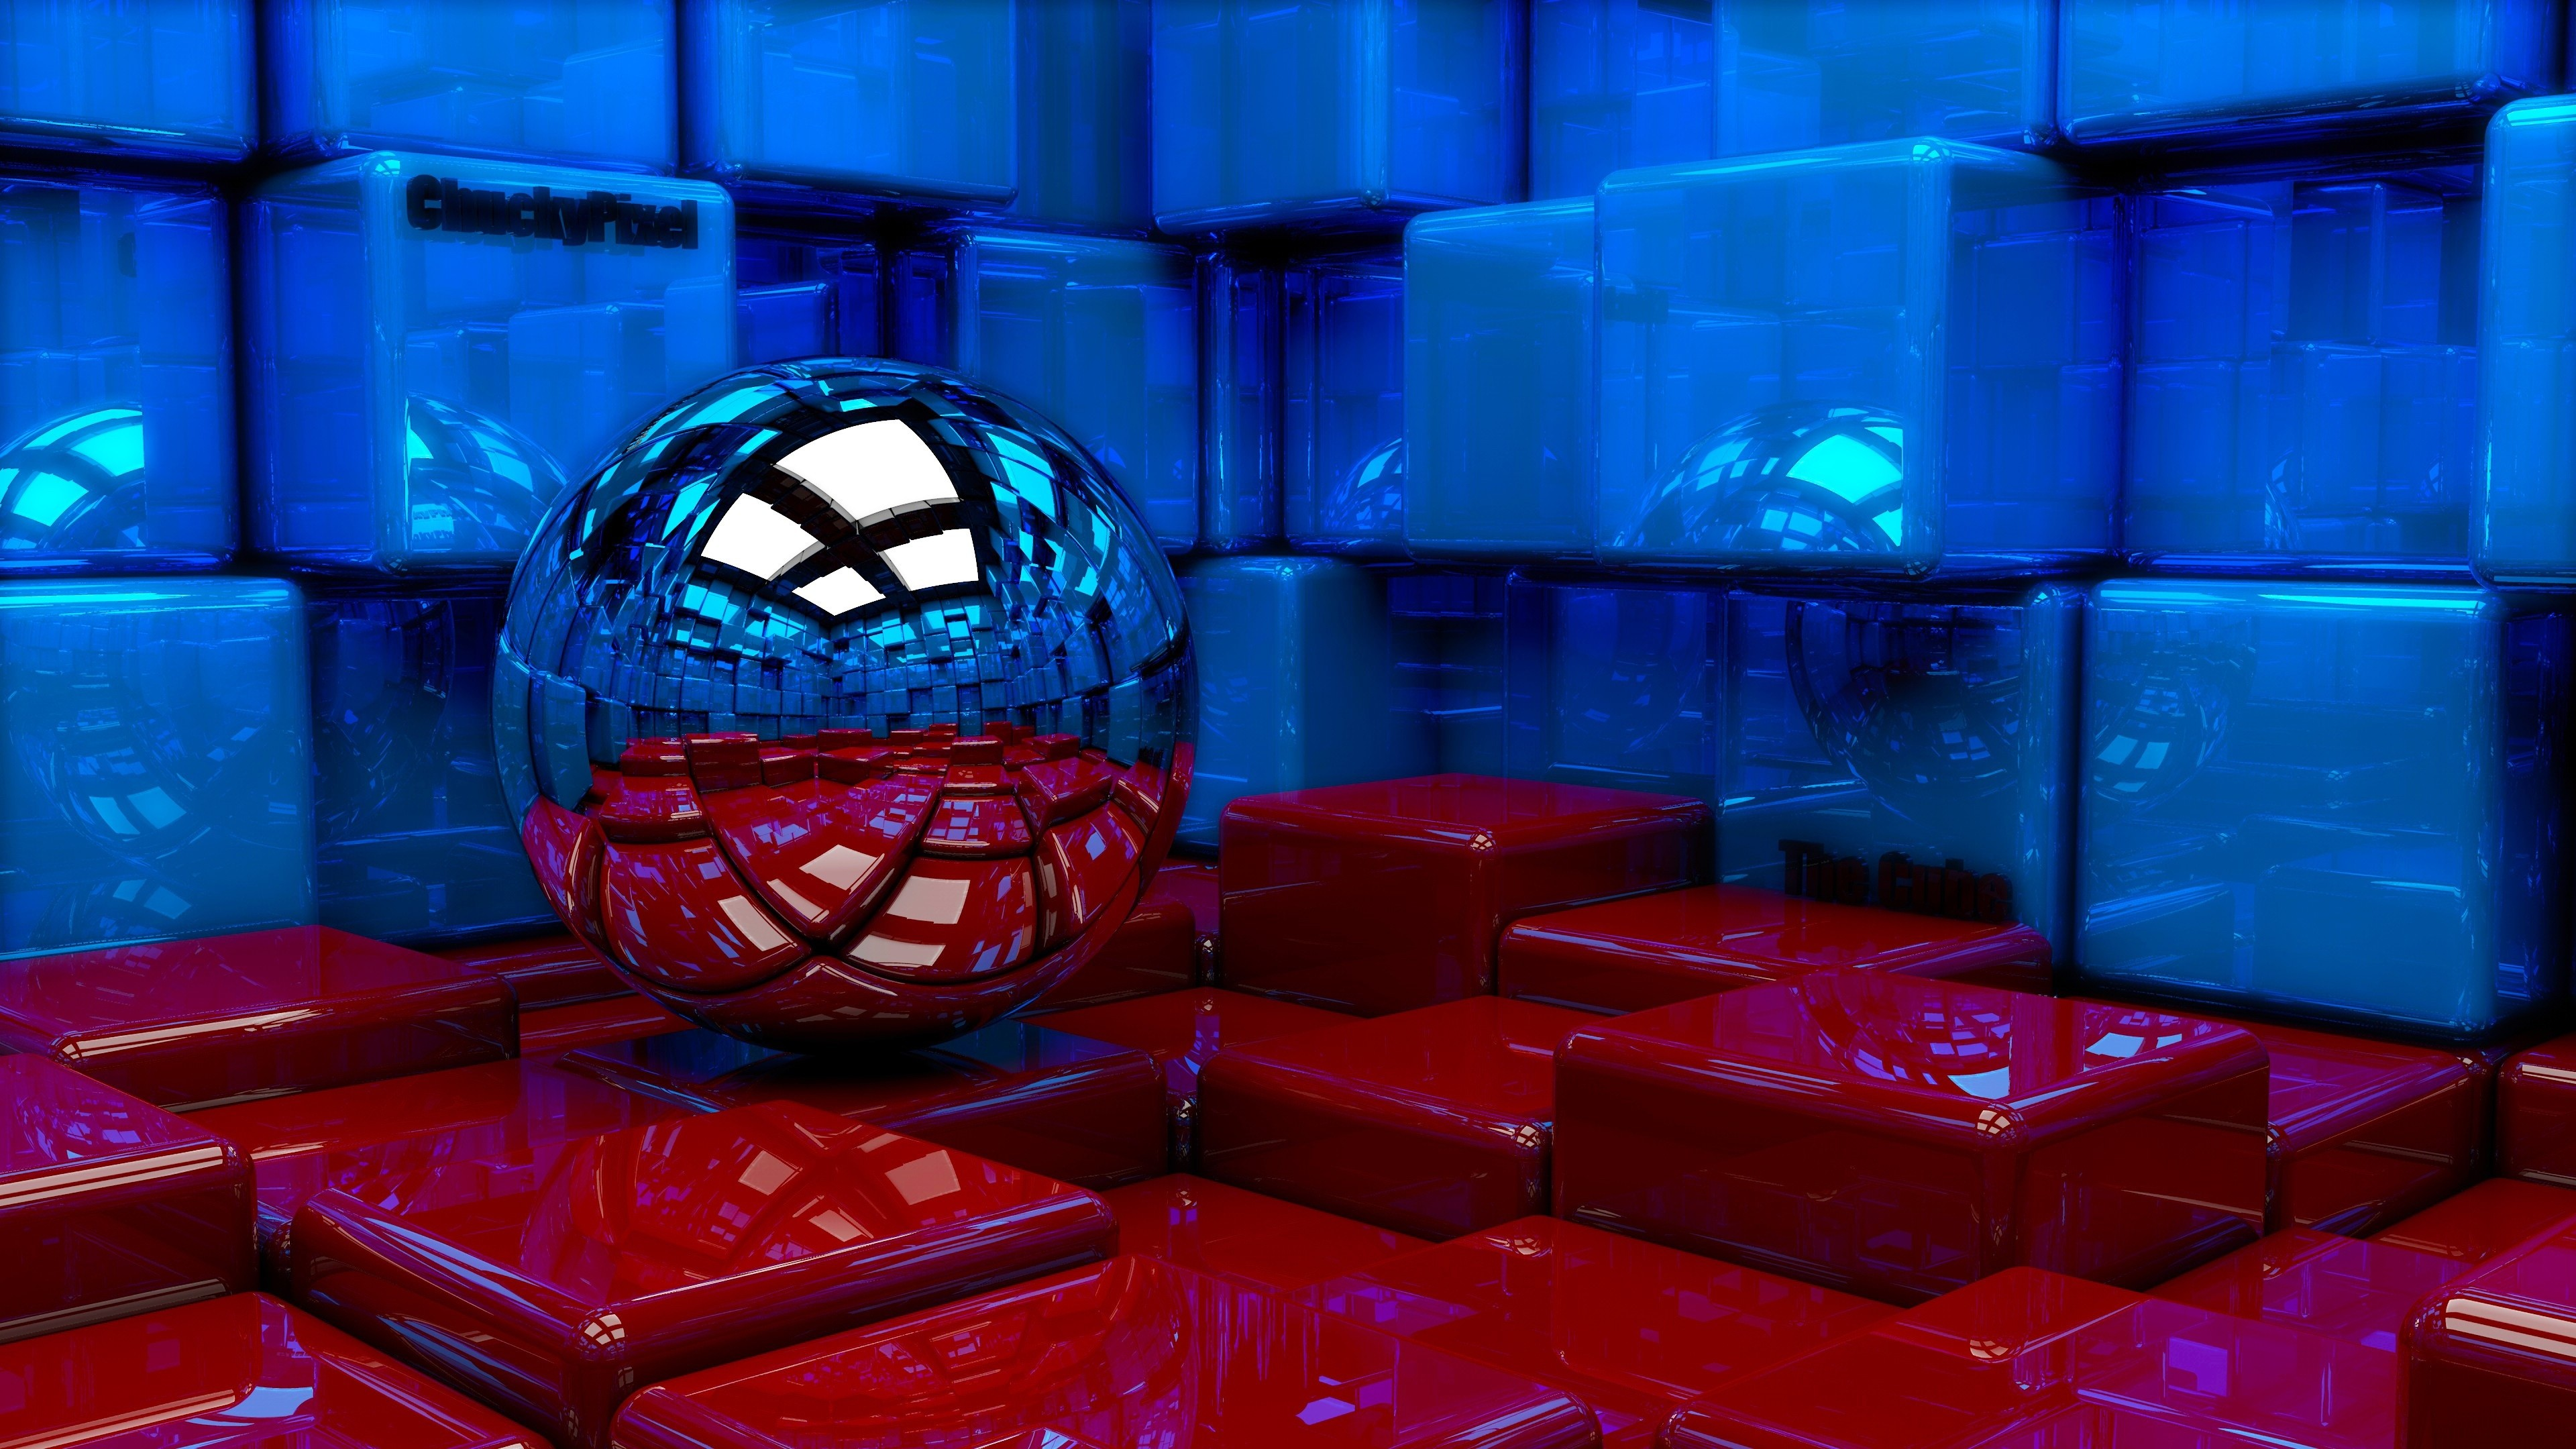 Preview wallpaper ball, cubes, metal, blue, red, reflection 3840×2160